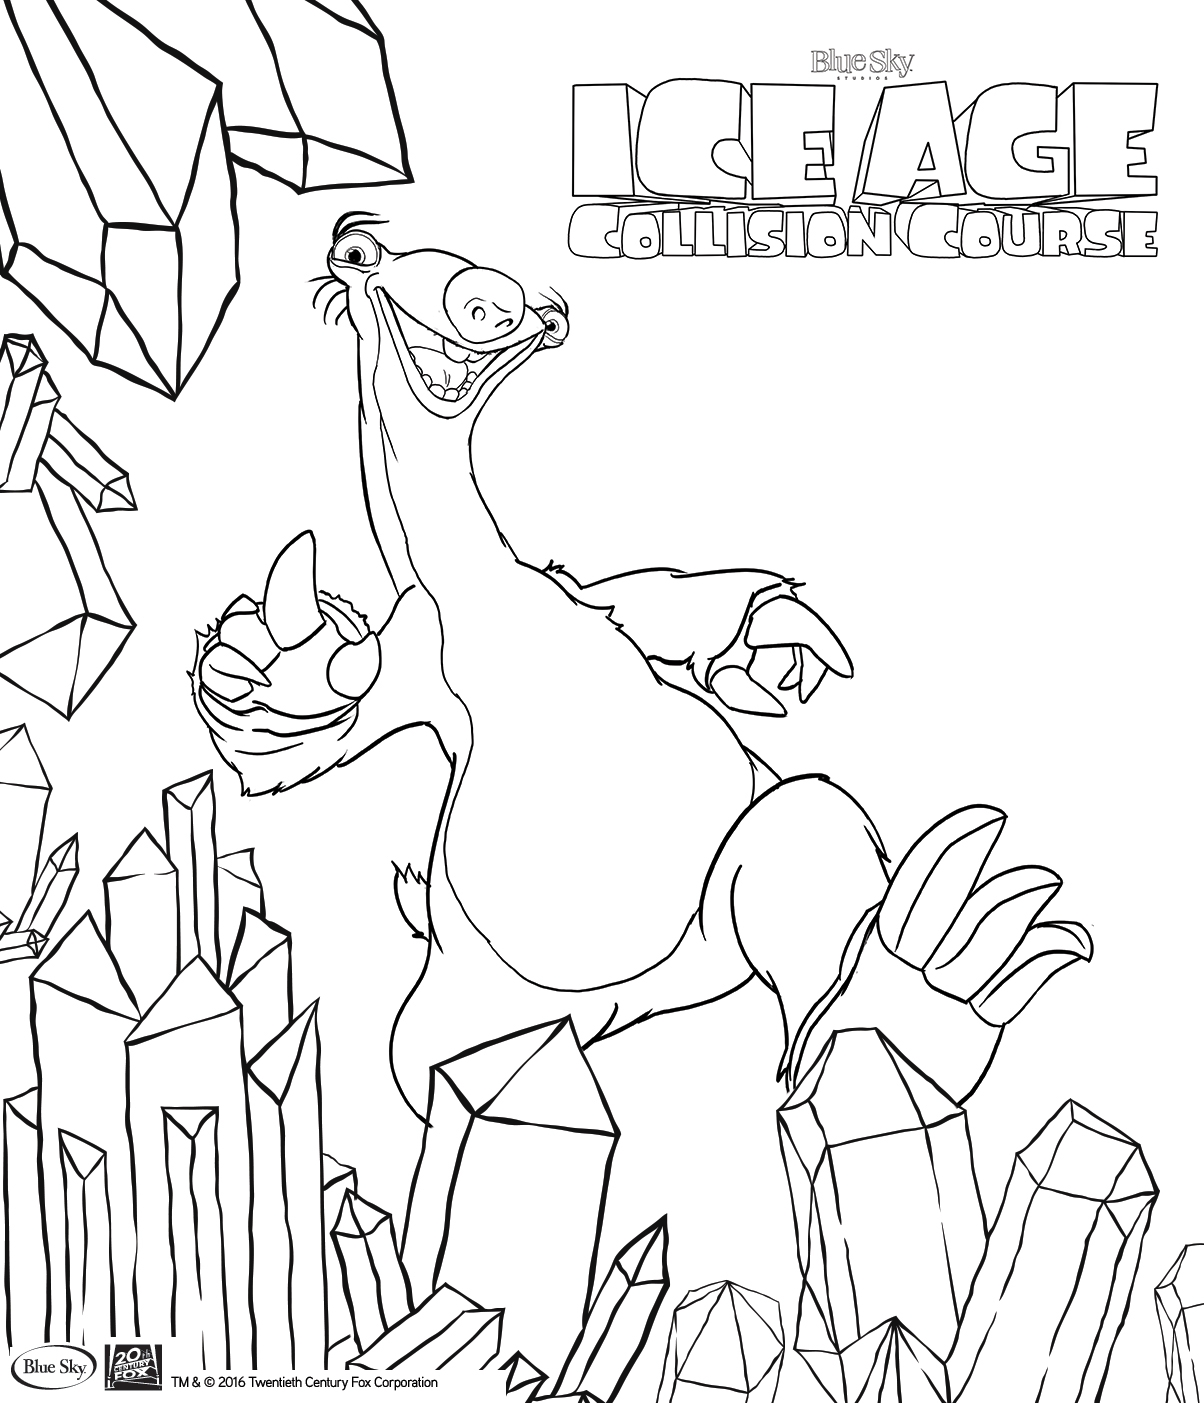 Ice Age Coloring Pages - Ice Age Collision Course Colouring In Pages for Kids